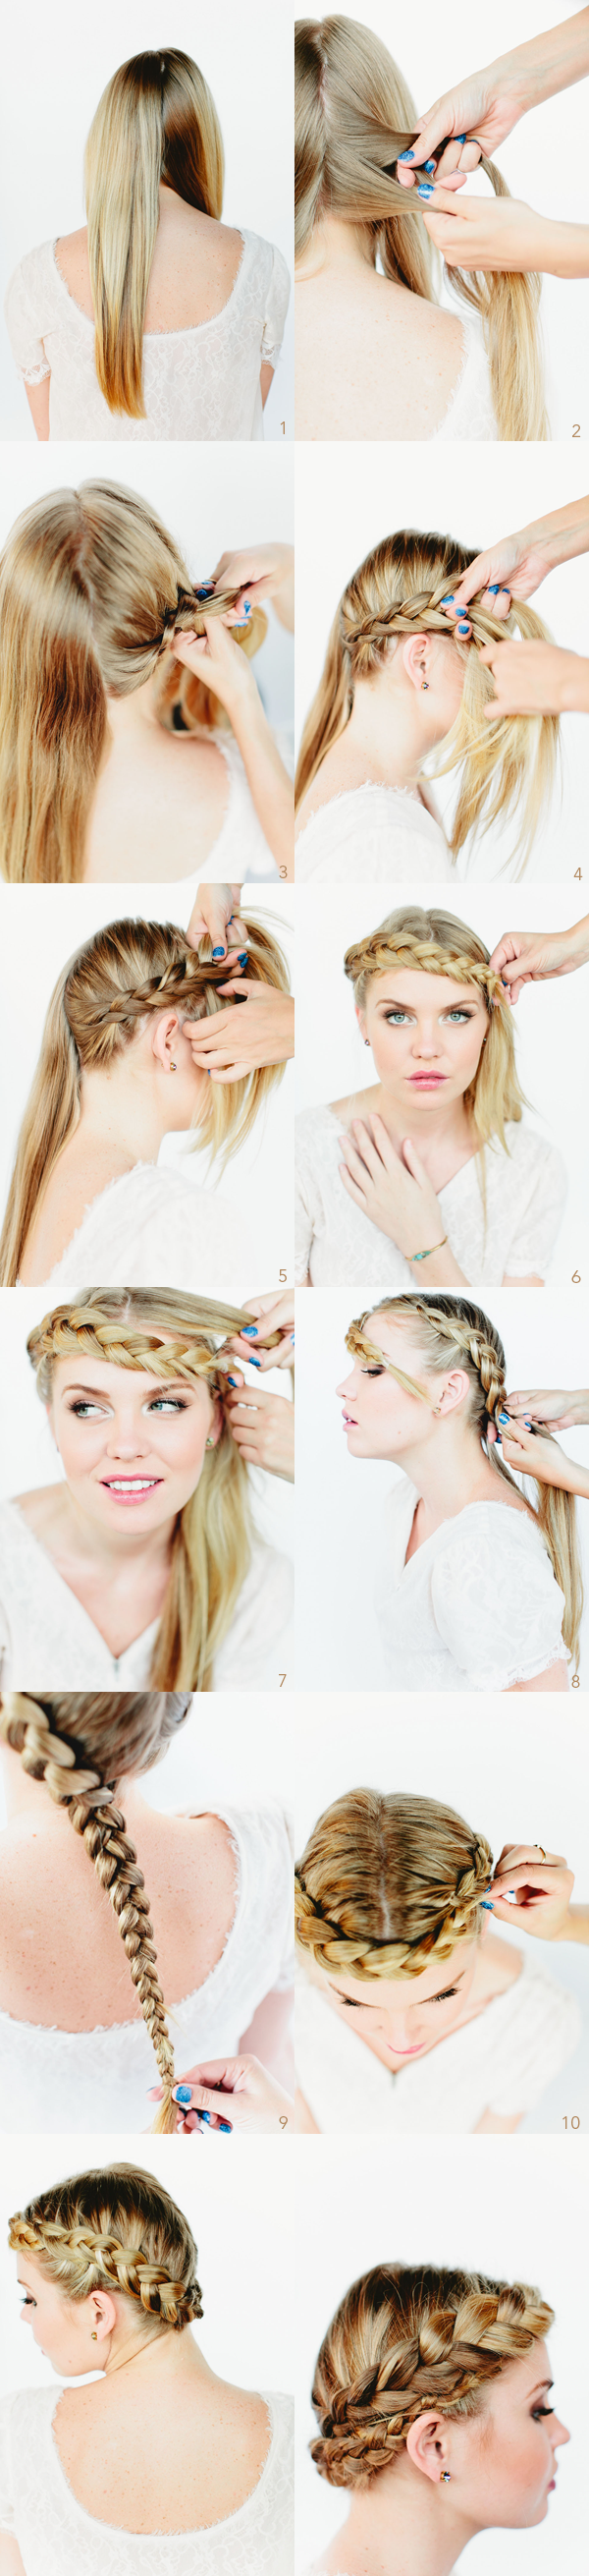 Crown braid wedding hairstyles for long hair